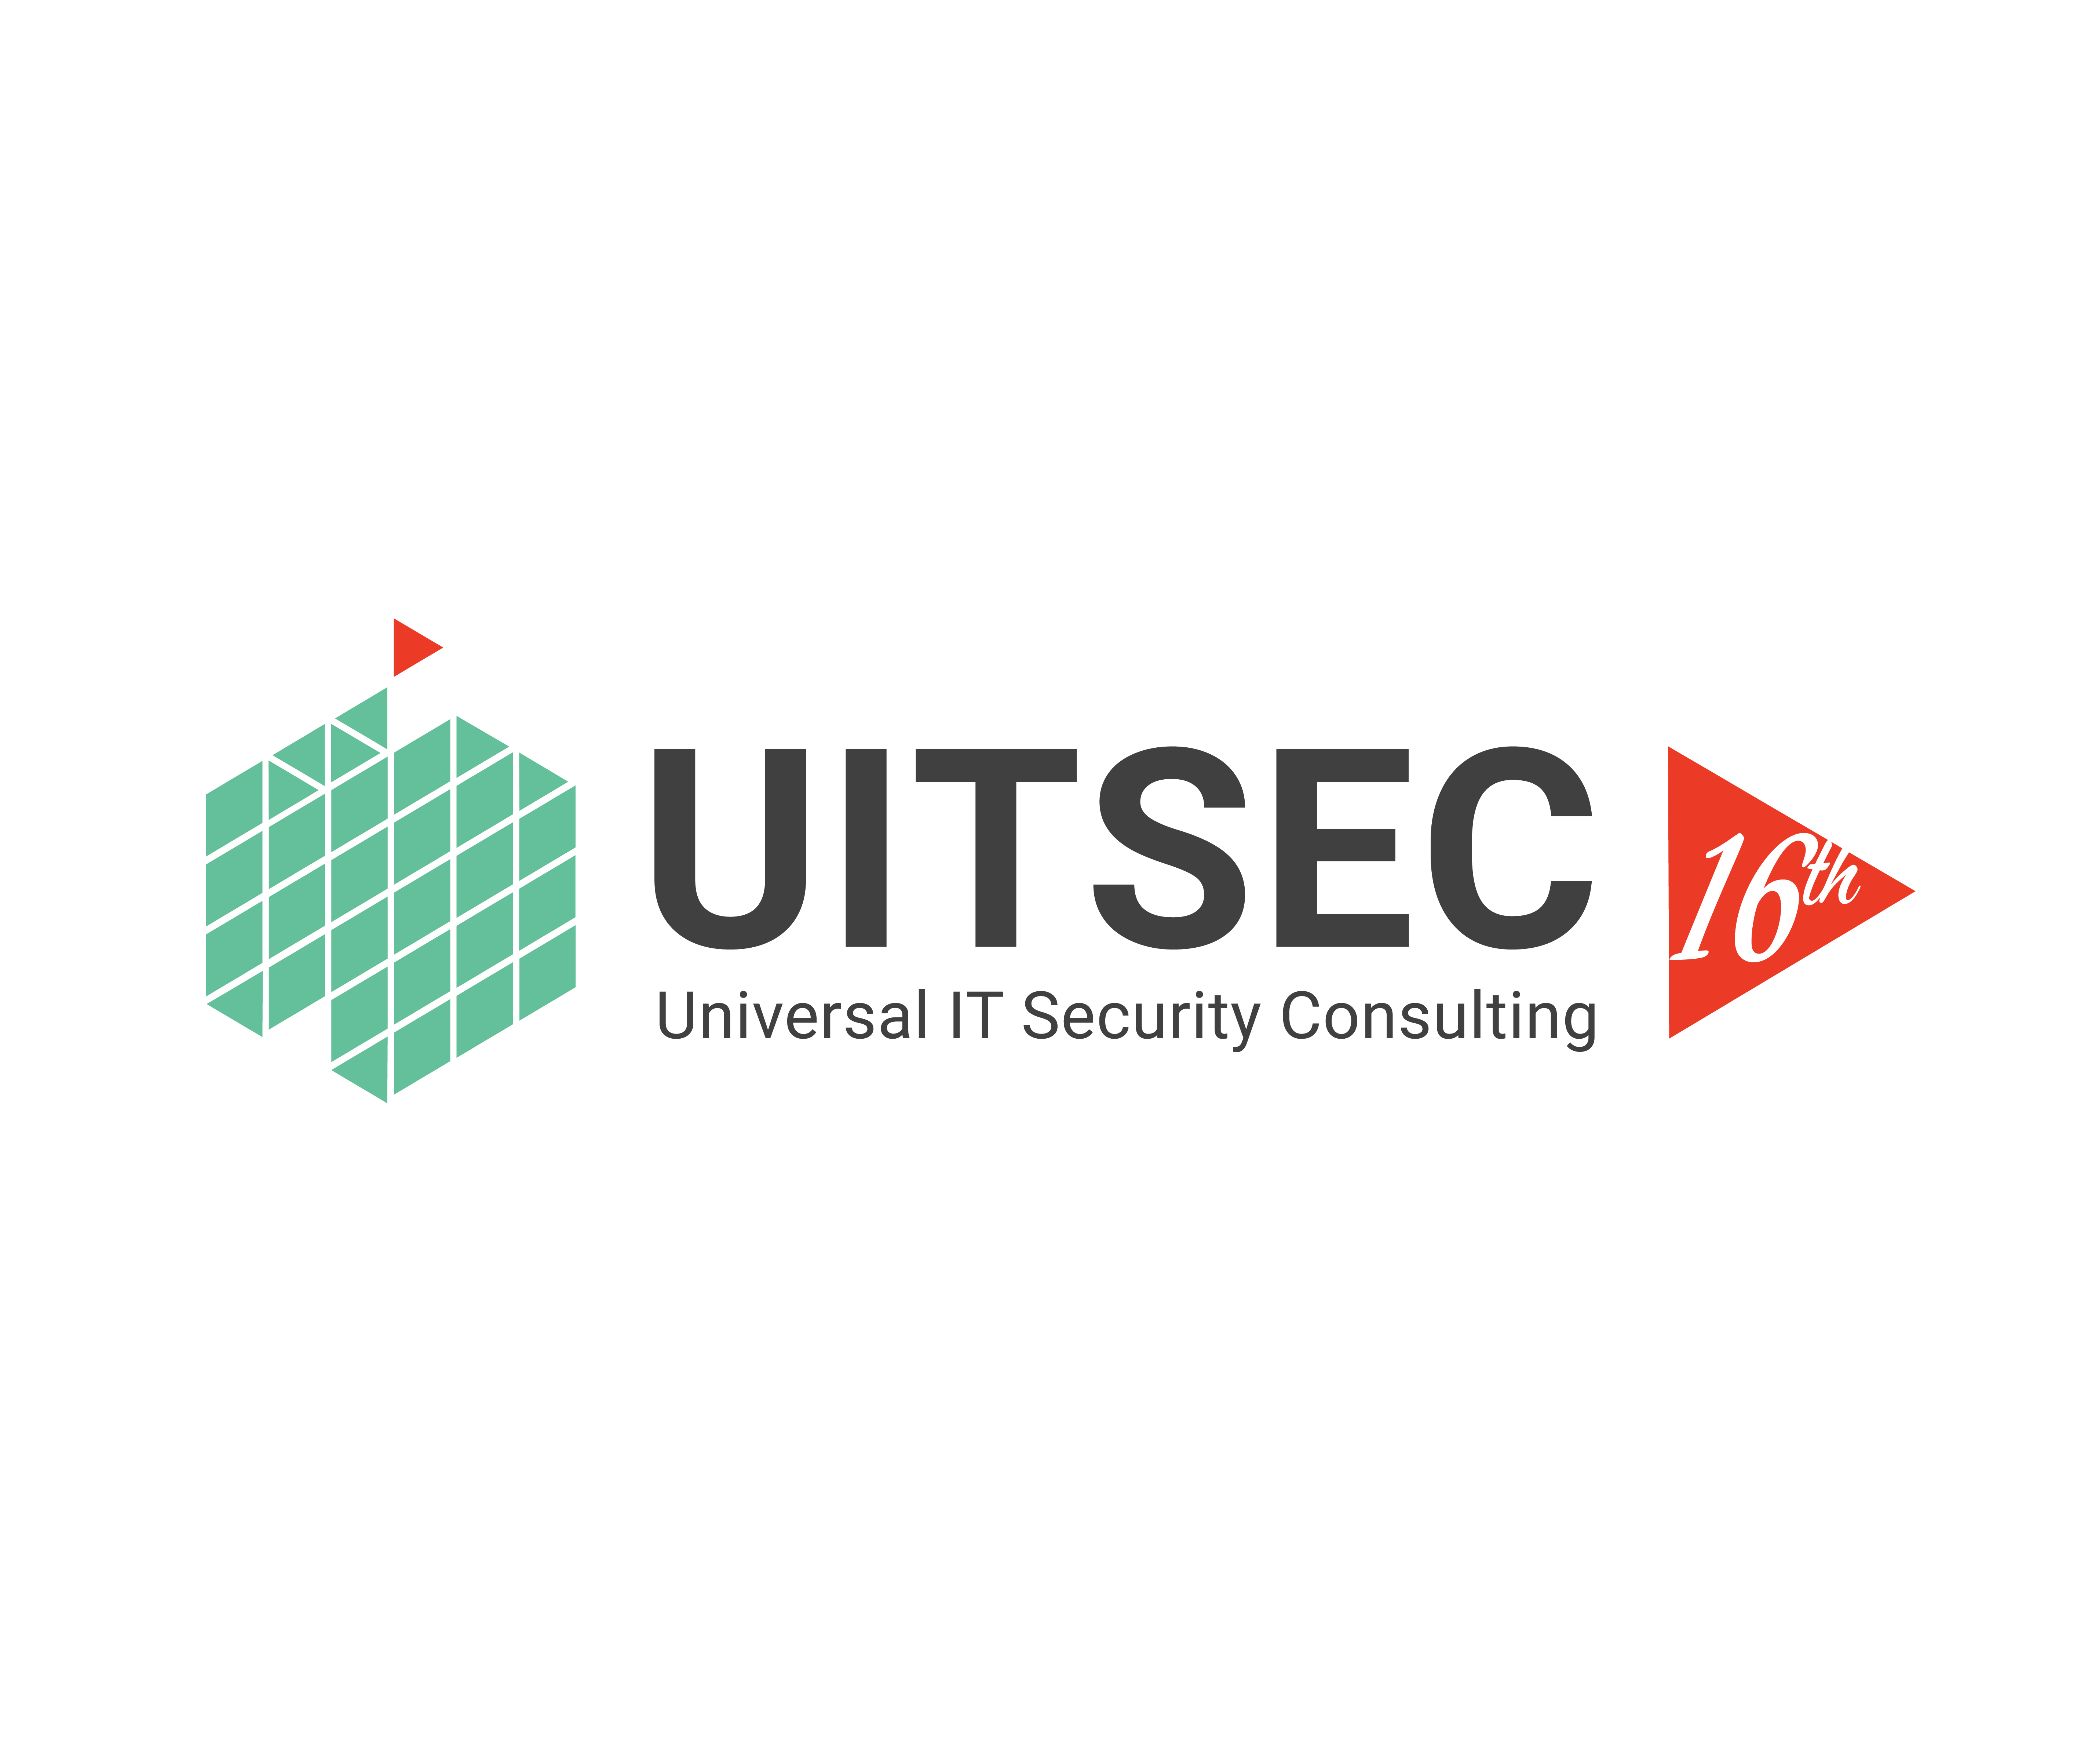 UITSEC UNIVERSAL IT SECURITY CONSULTING